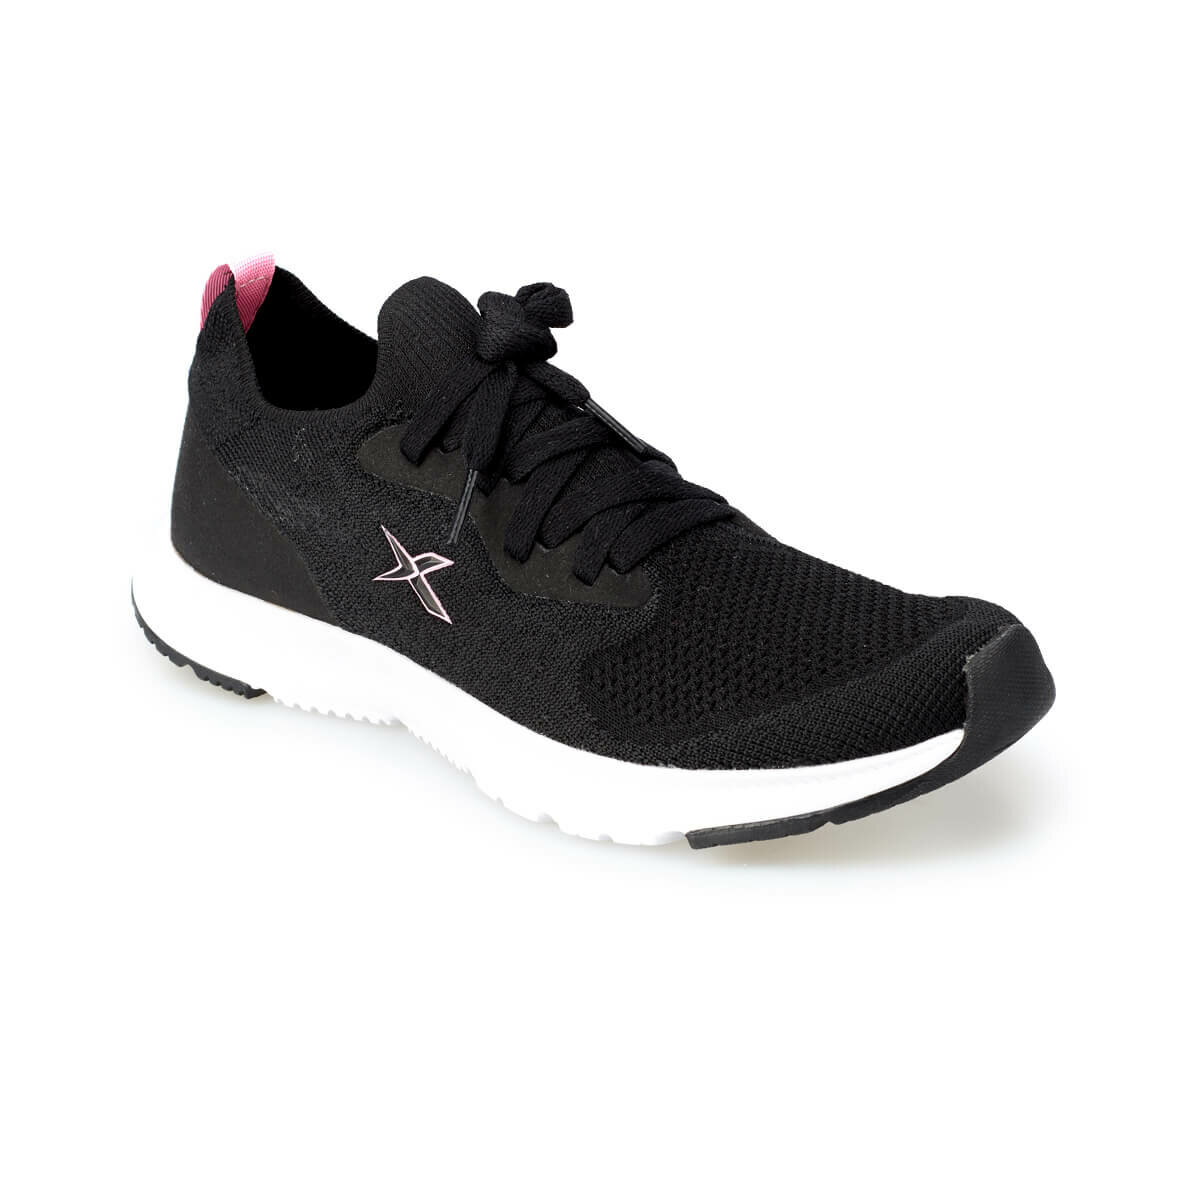 FLO CORSA W Black Women 'S Running Shoe KINETIX